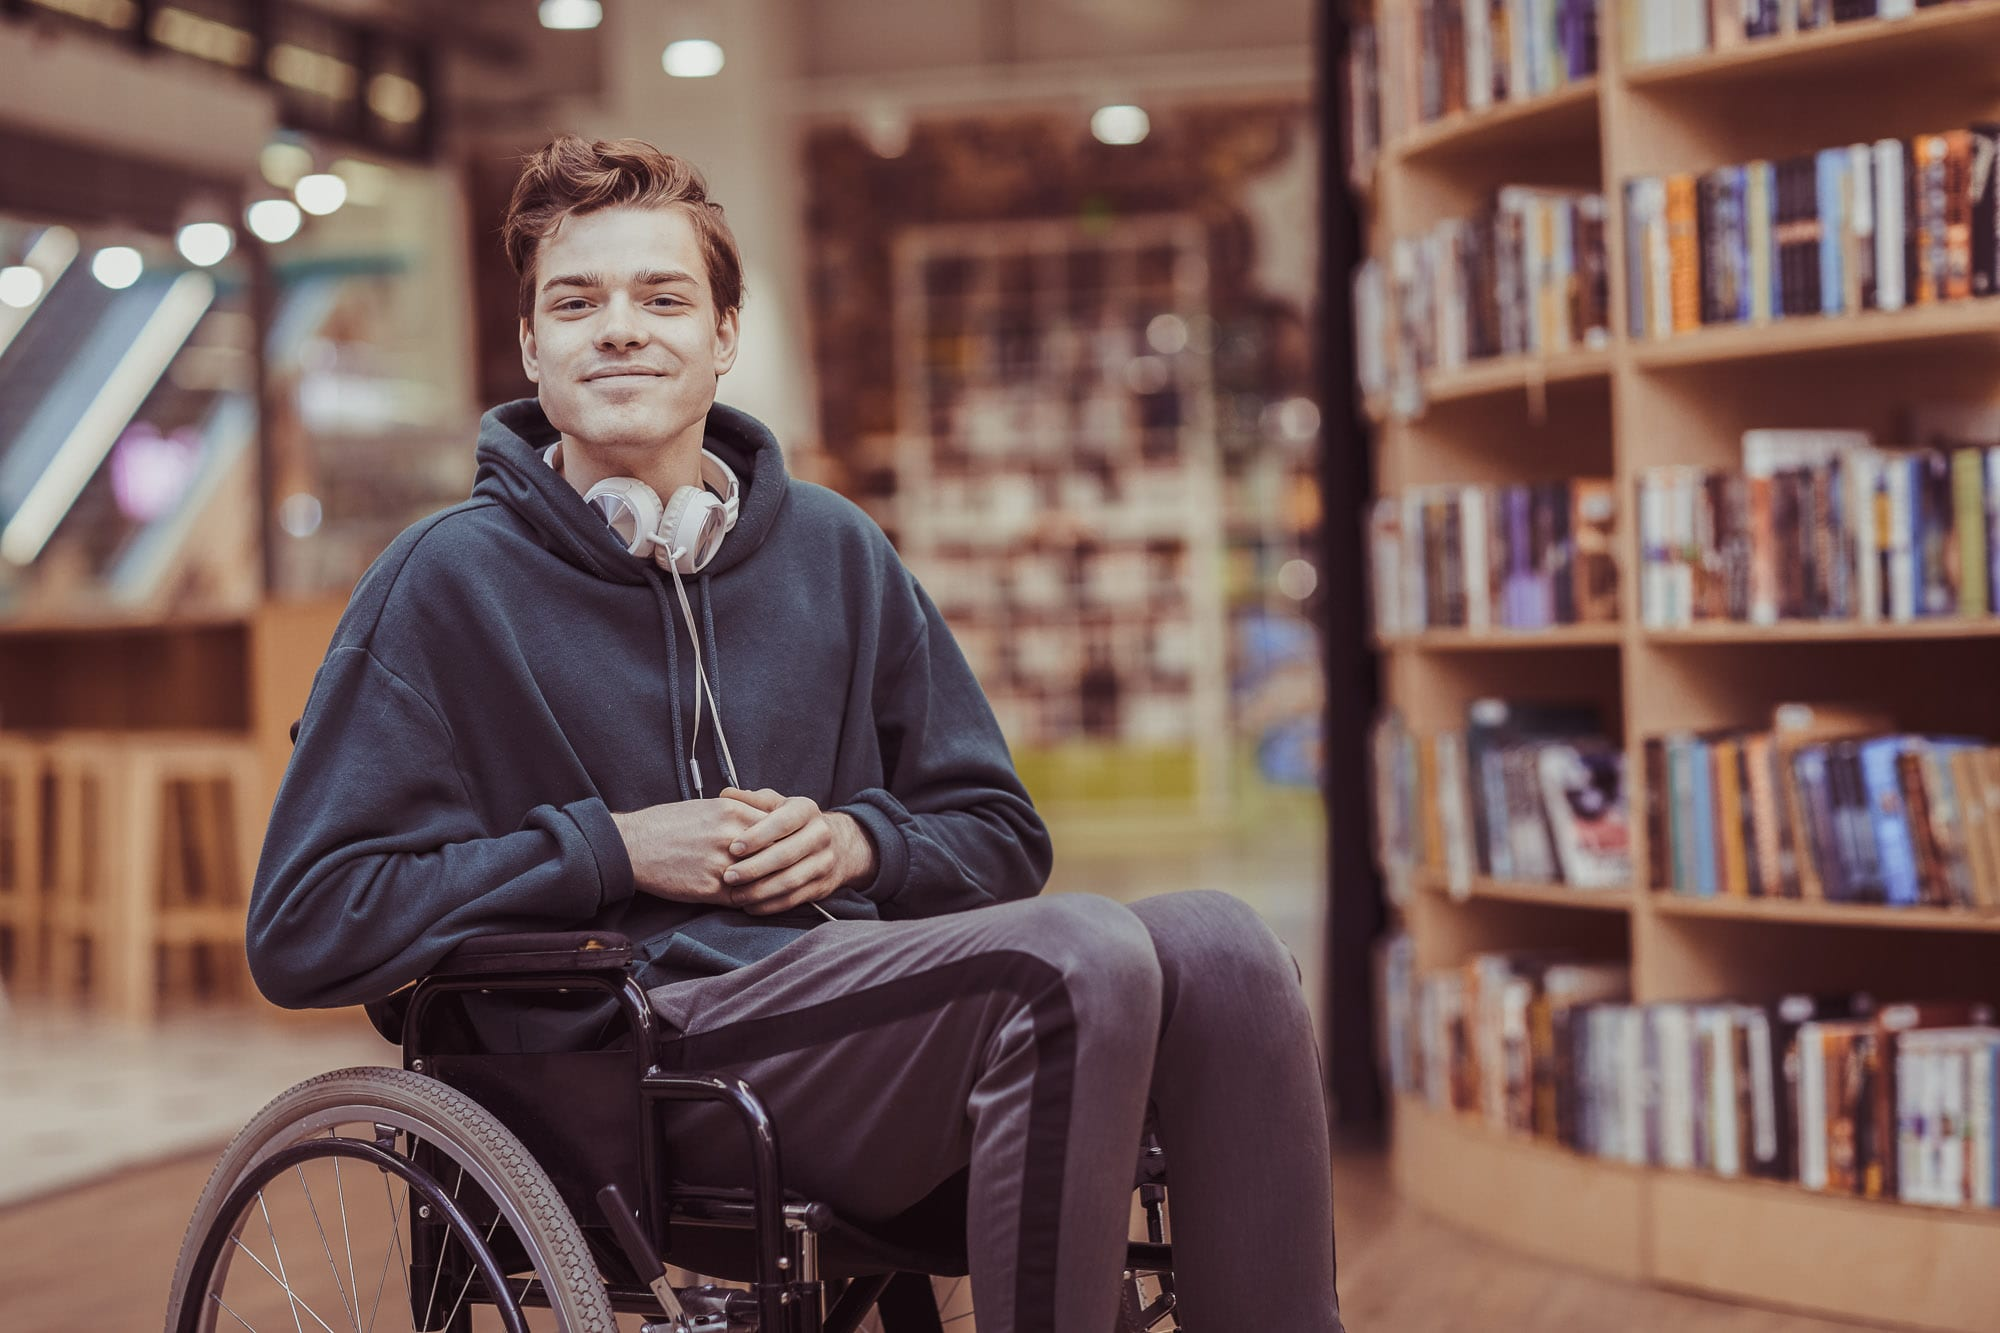 Student in a wheelchair